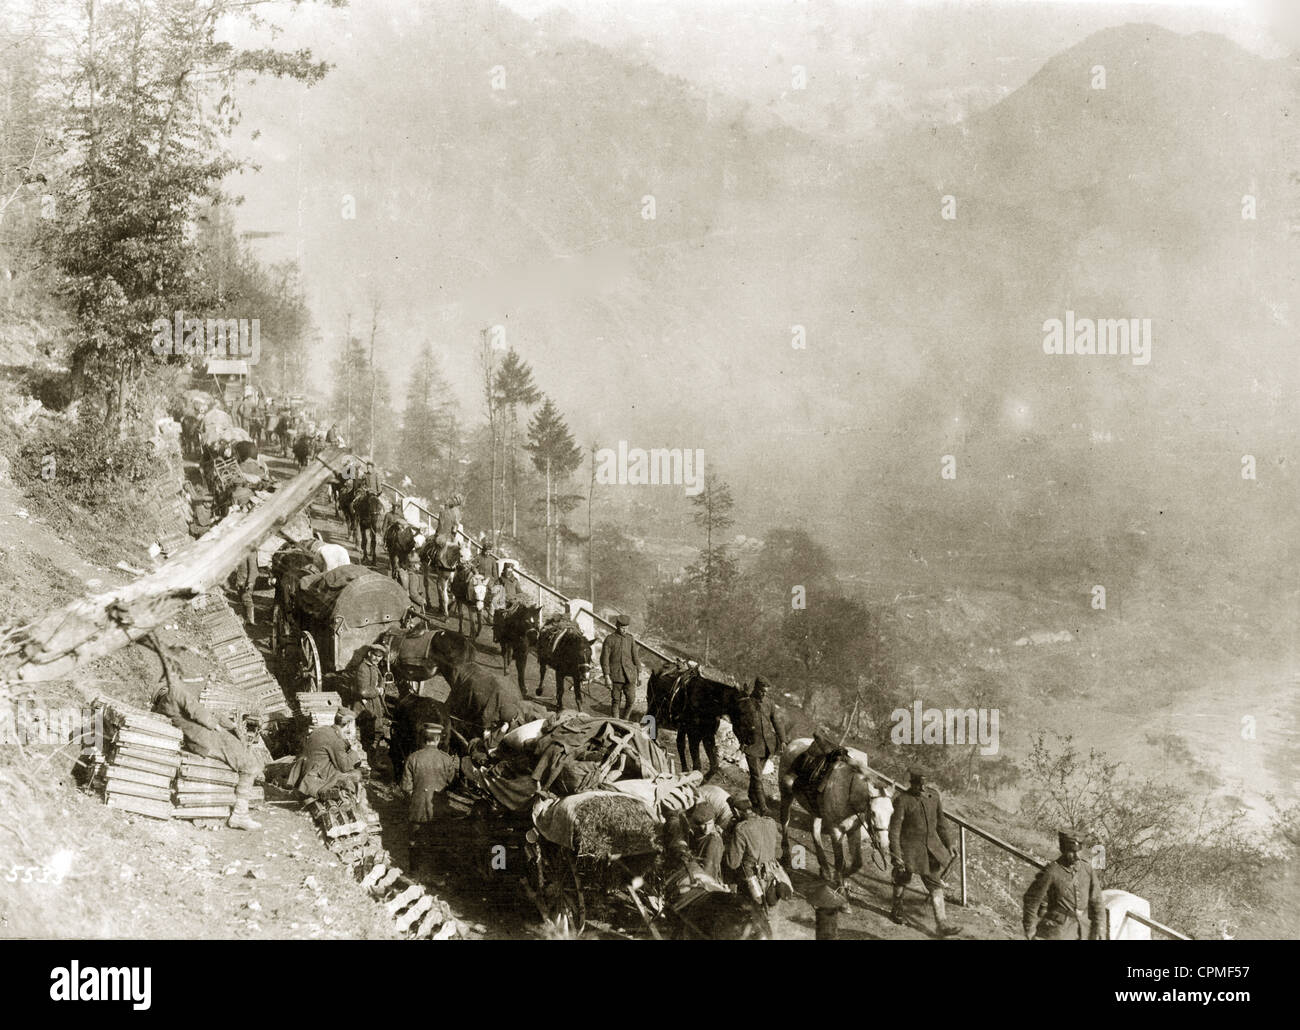 Battle isonzo first world war stock photos battle isonzo first german supply convoy during the 12th battle of the isonzo 1917 stock image sciox Gallery